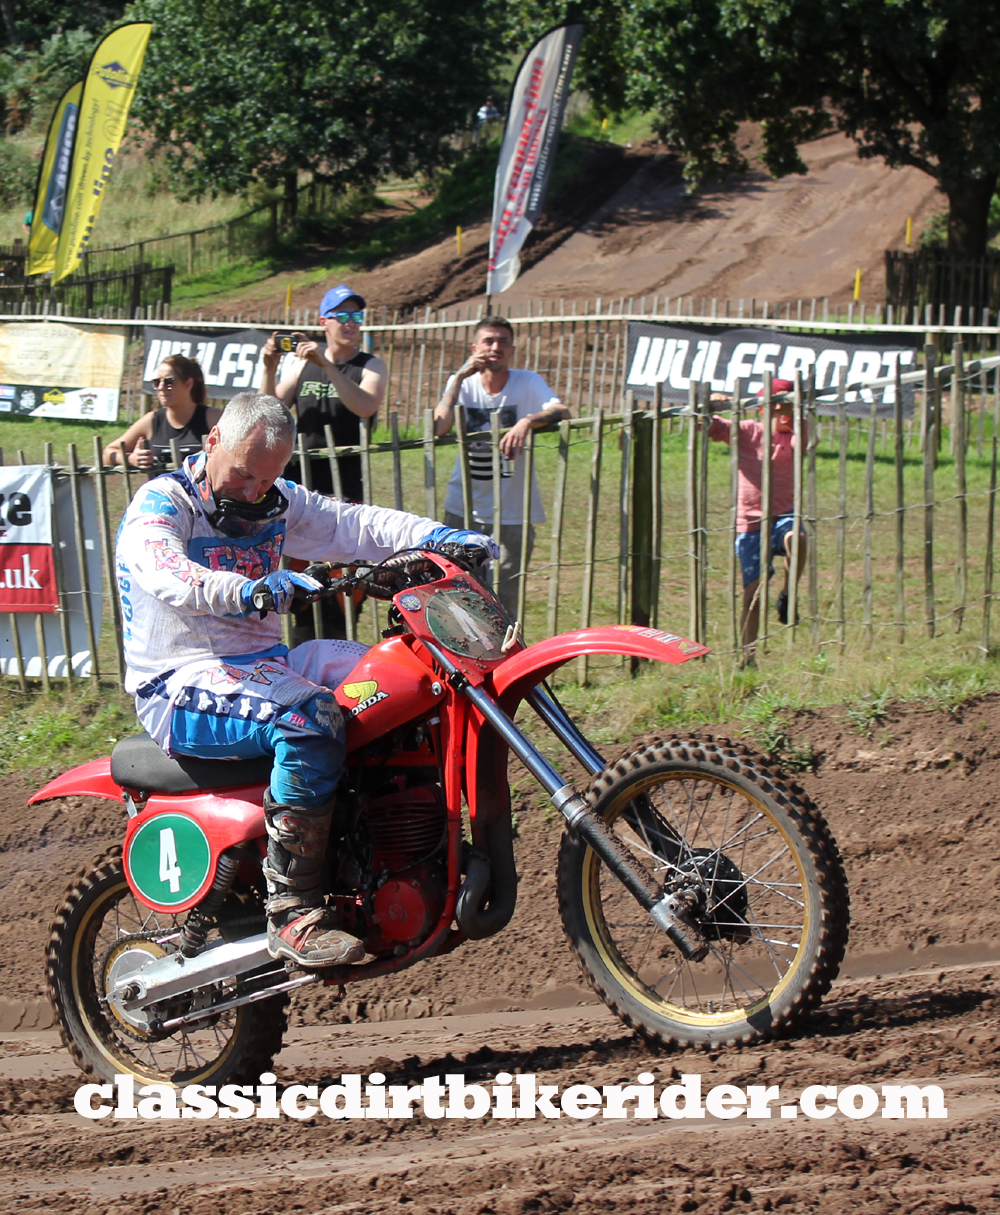 2016-hawkstone-park-festival-of-legends-classicdirtbikerider-com-photo-by-mr-j-42